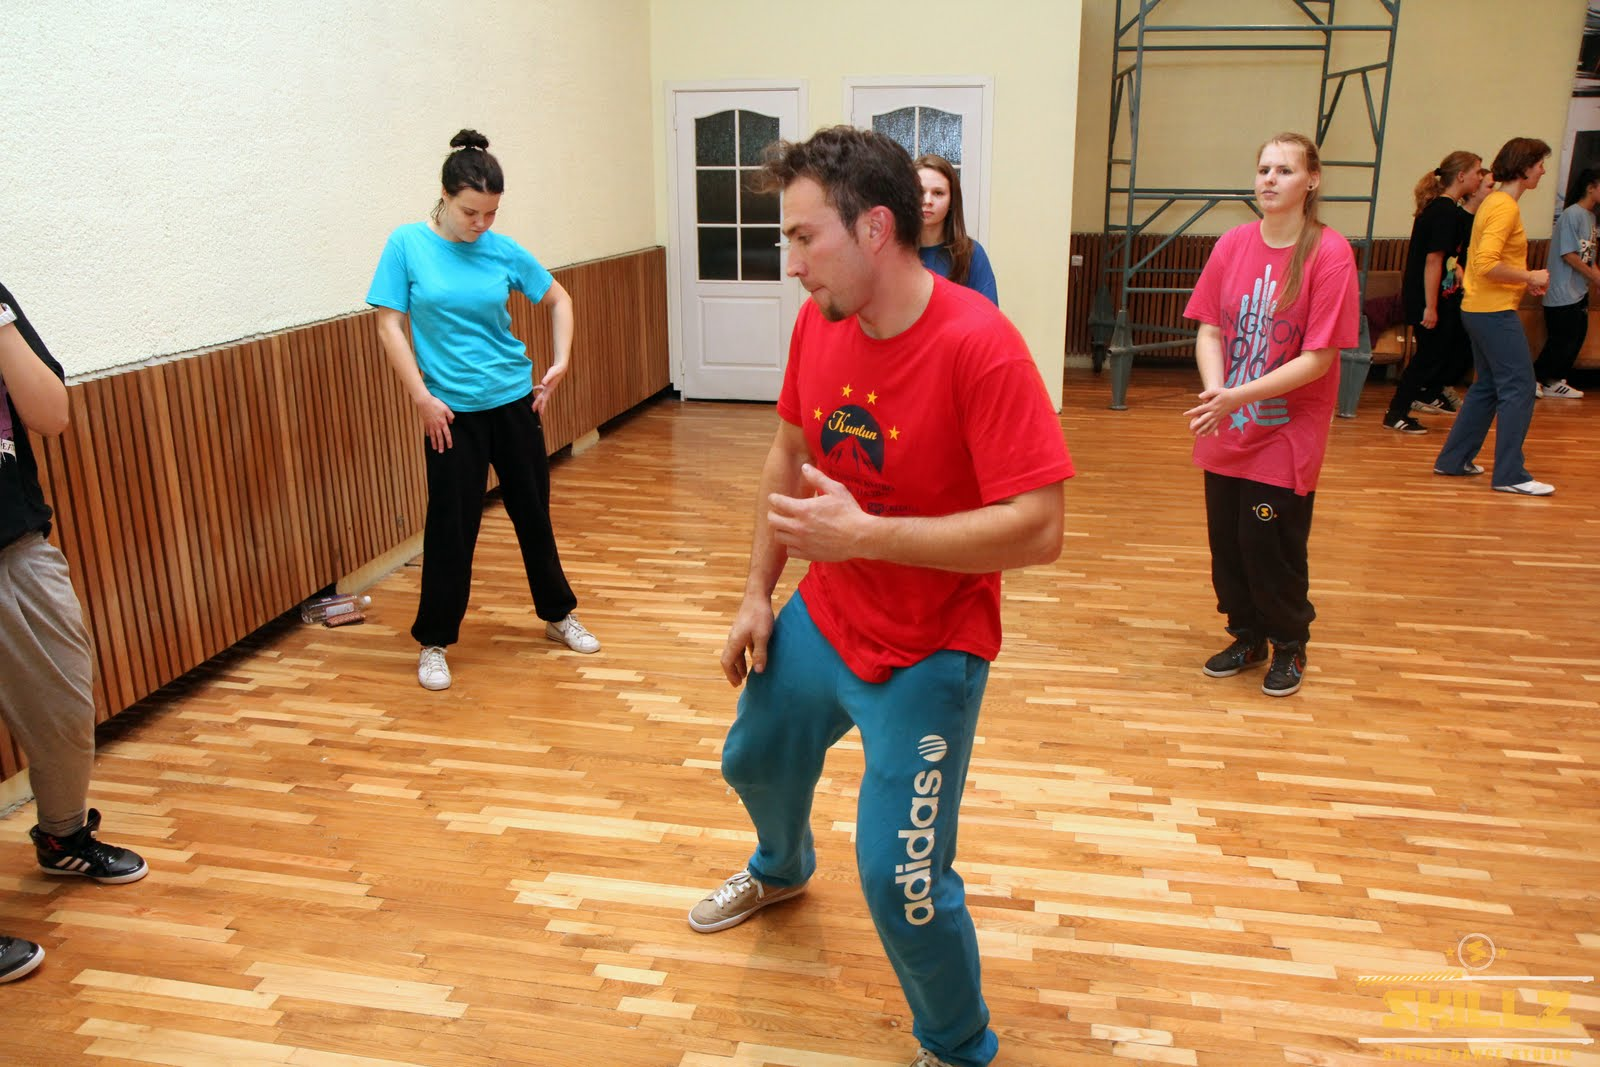 Hip- Hop workshop with Shaadow (UK) - IMG_1807.jpg